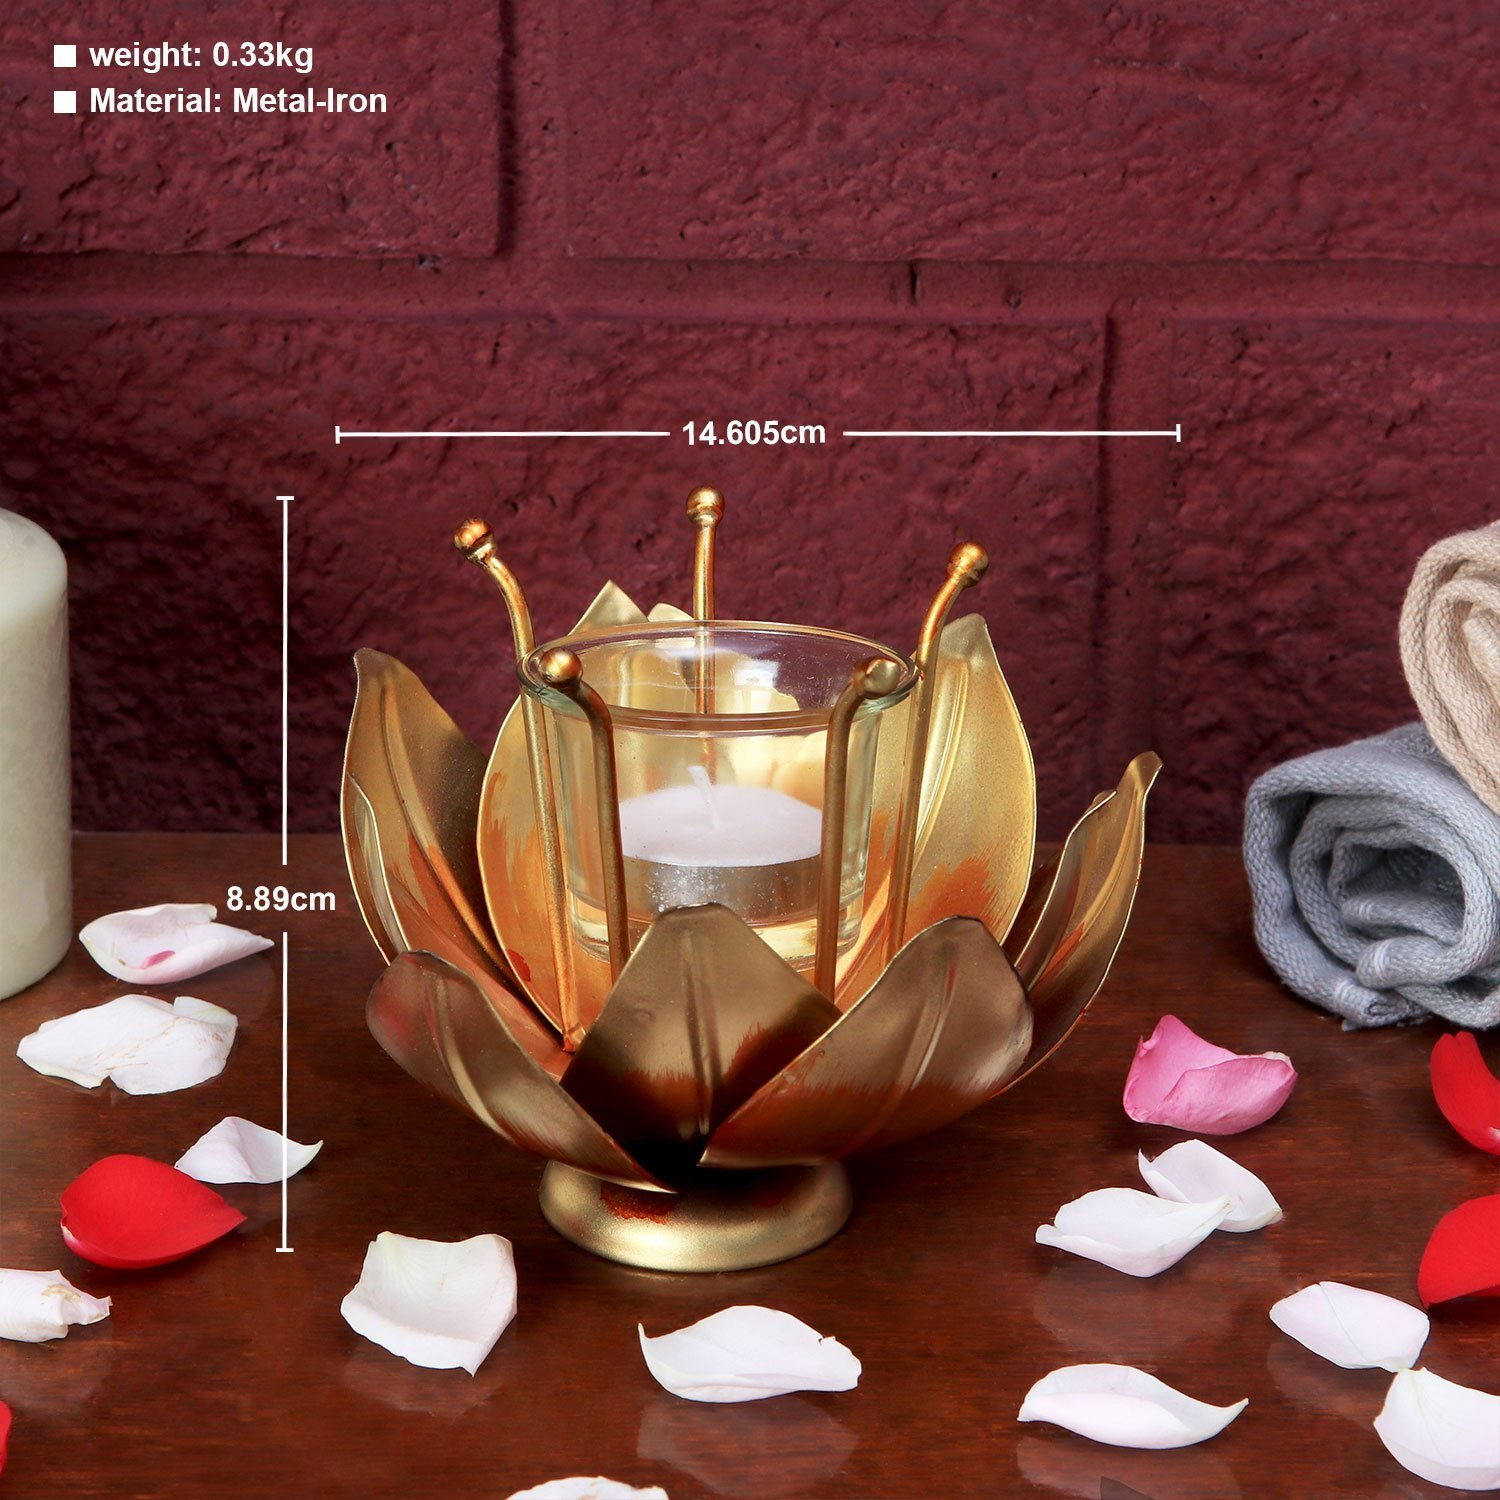 The India Craft Golden Lotus T-Light Artwork Beautiful Table Top Home  Decor, Handicrafts, Sculpture, Decoration For Living Room Wall, Bedroom,  Office,